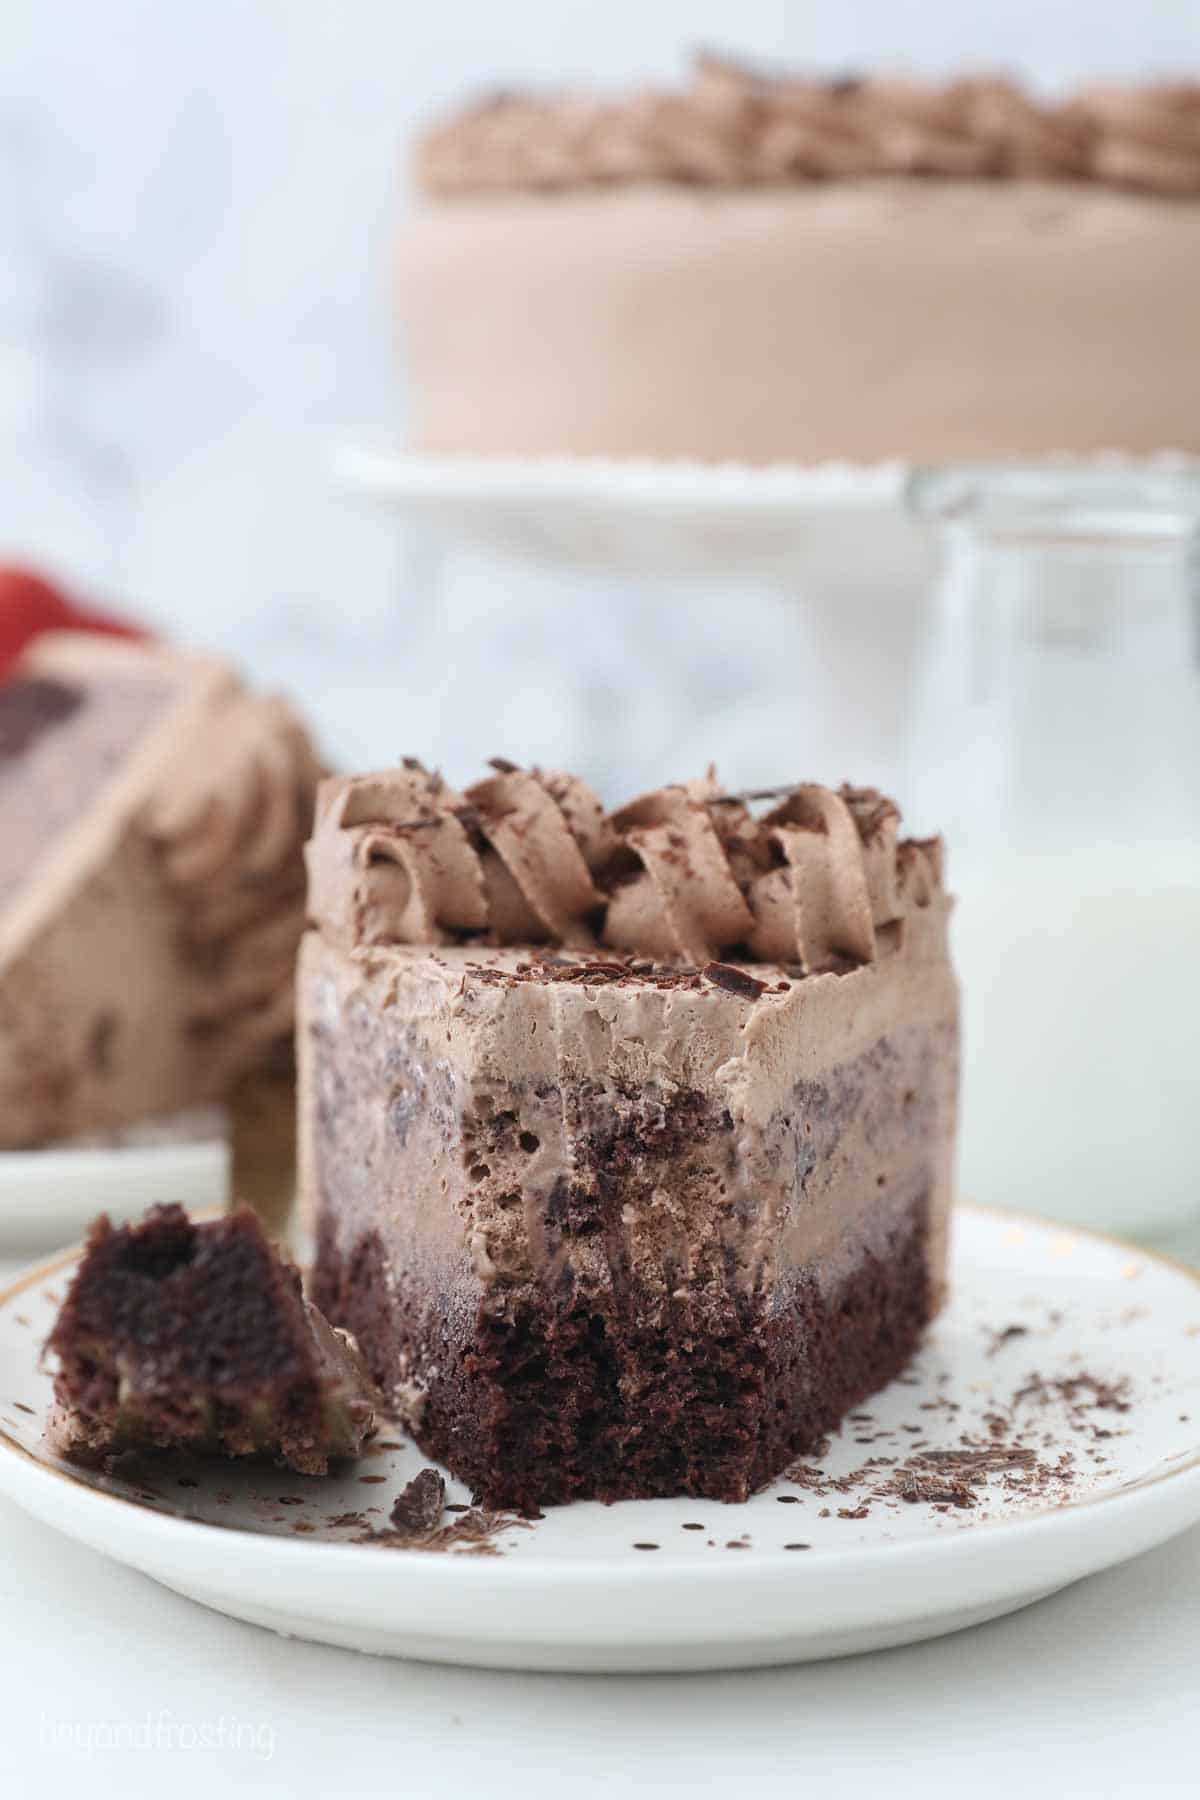 a slice of layered chocolate cake with a bite missing